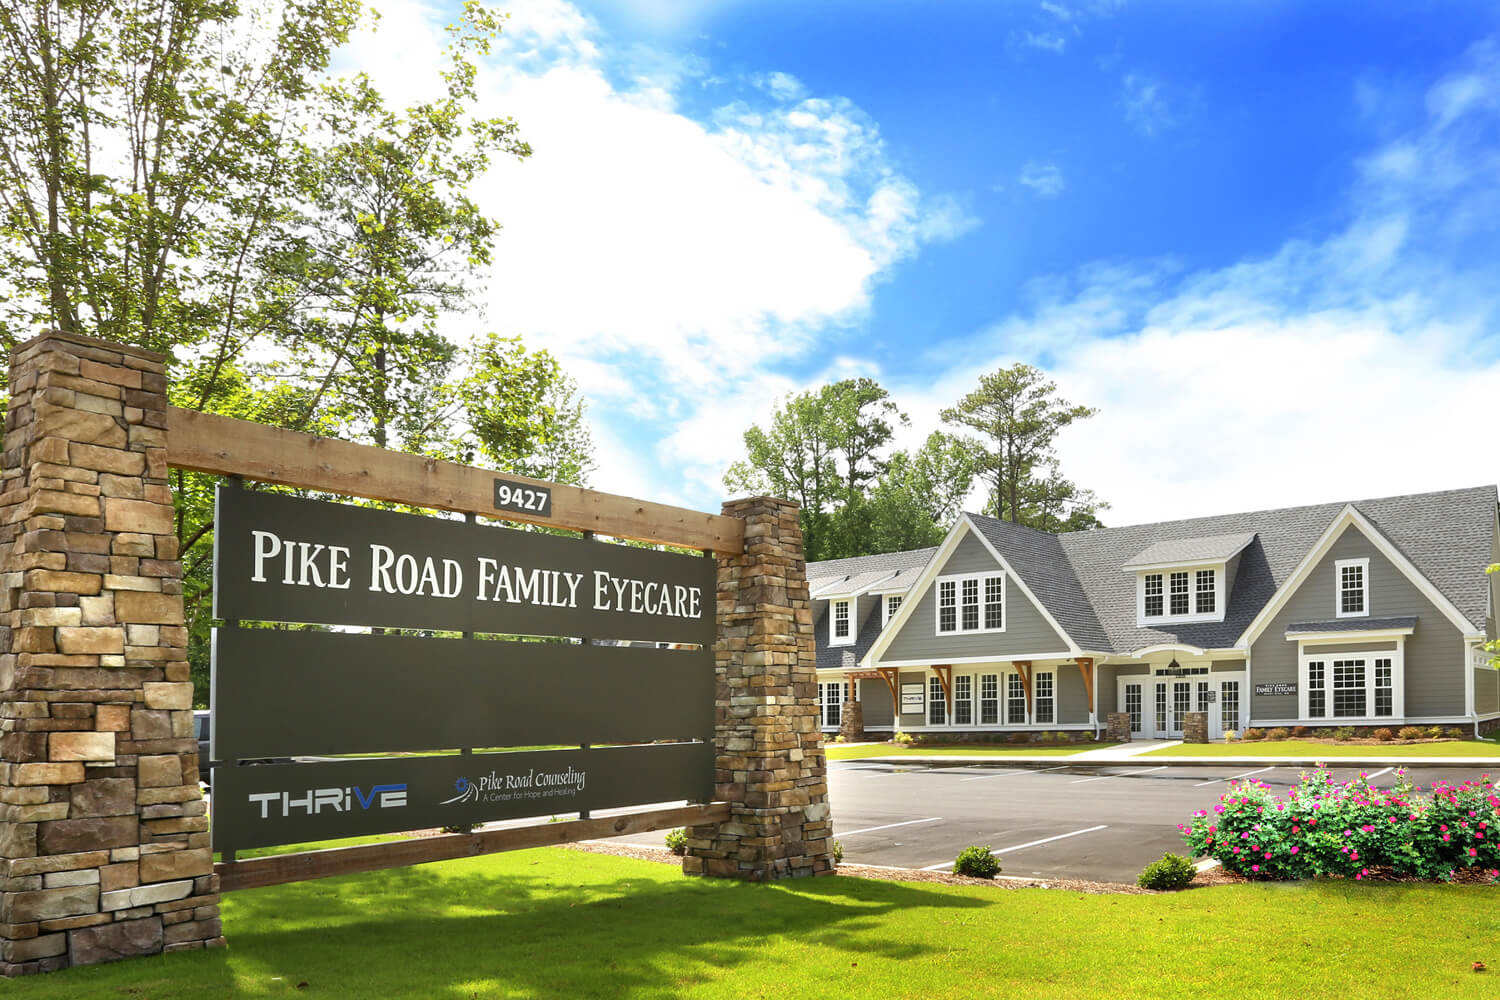 Pike Road Family Eyecare Designed by Foshee Architecture – Sign at the Front Entrance